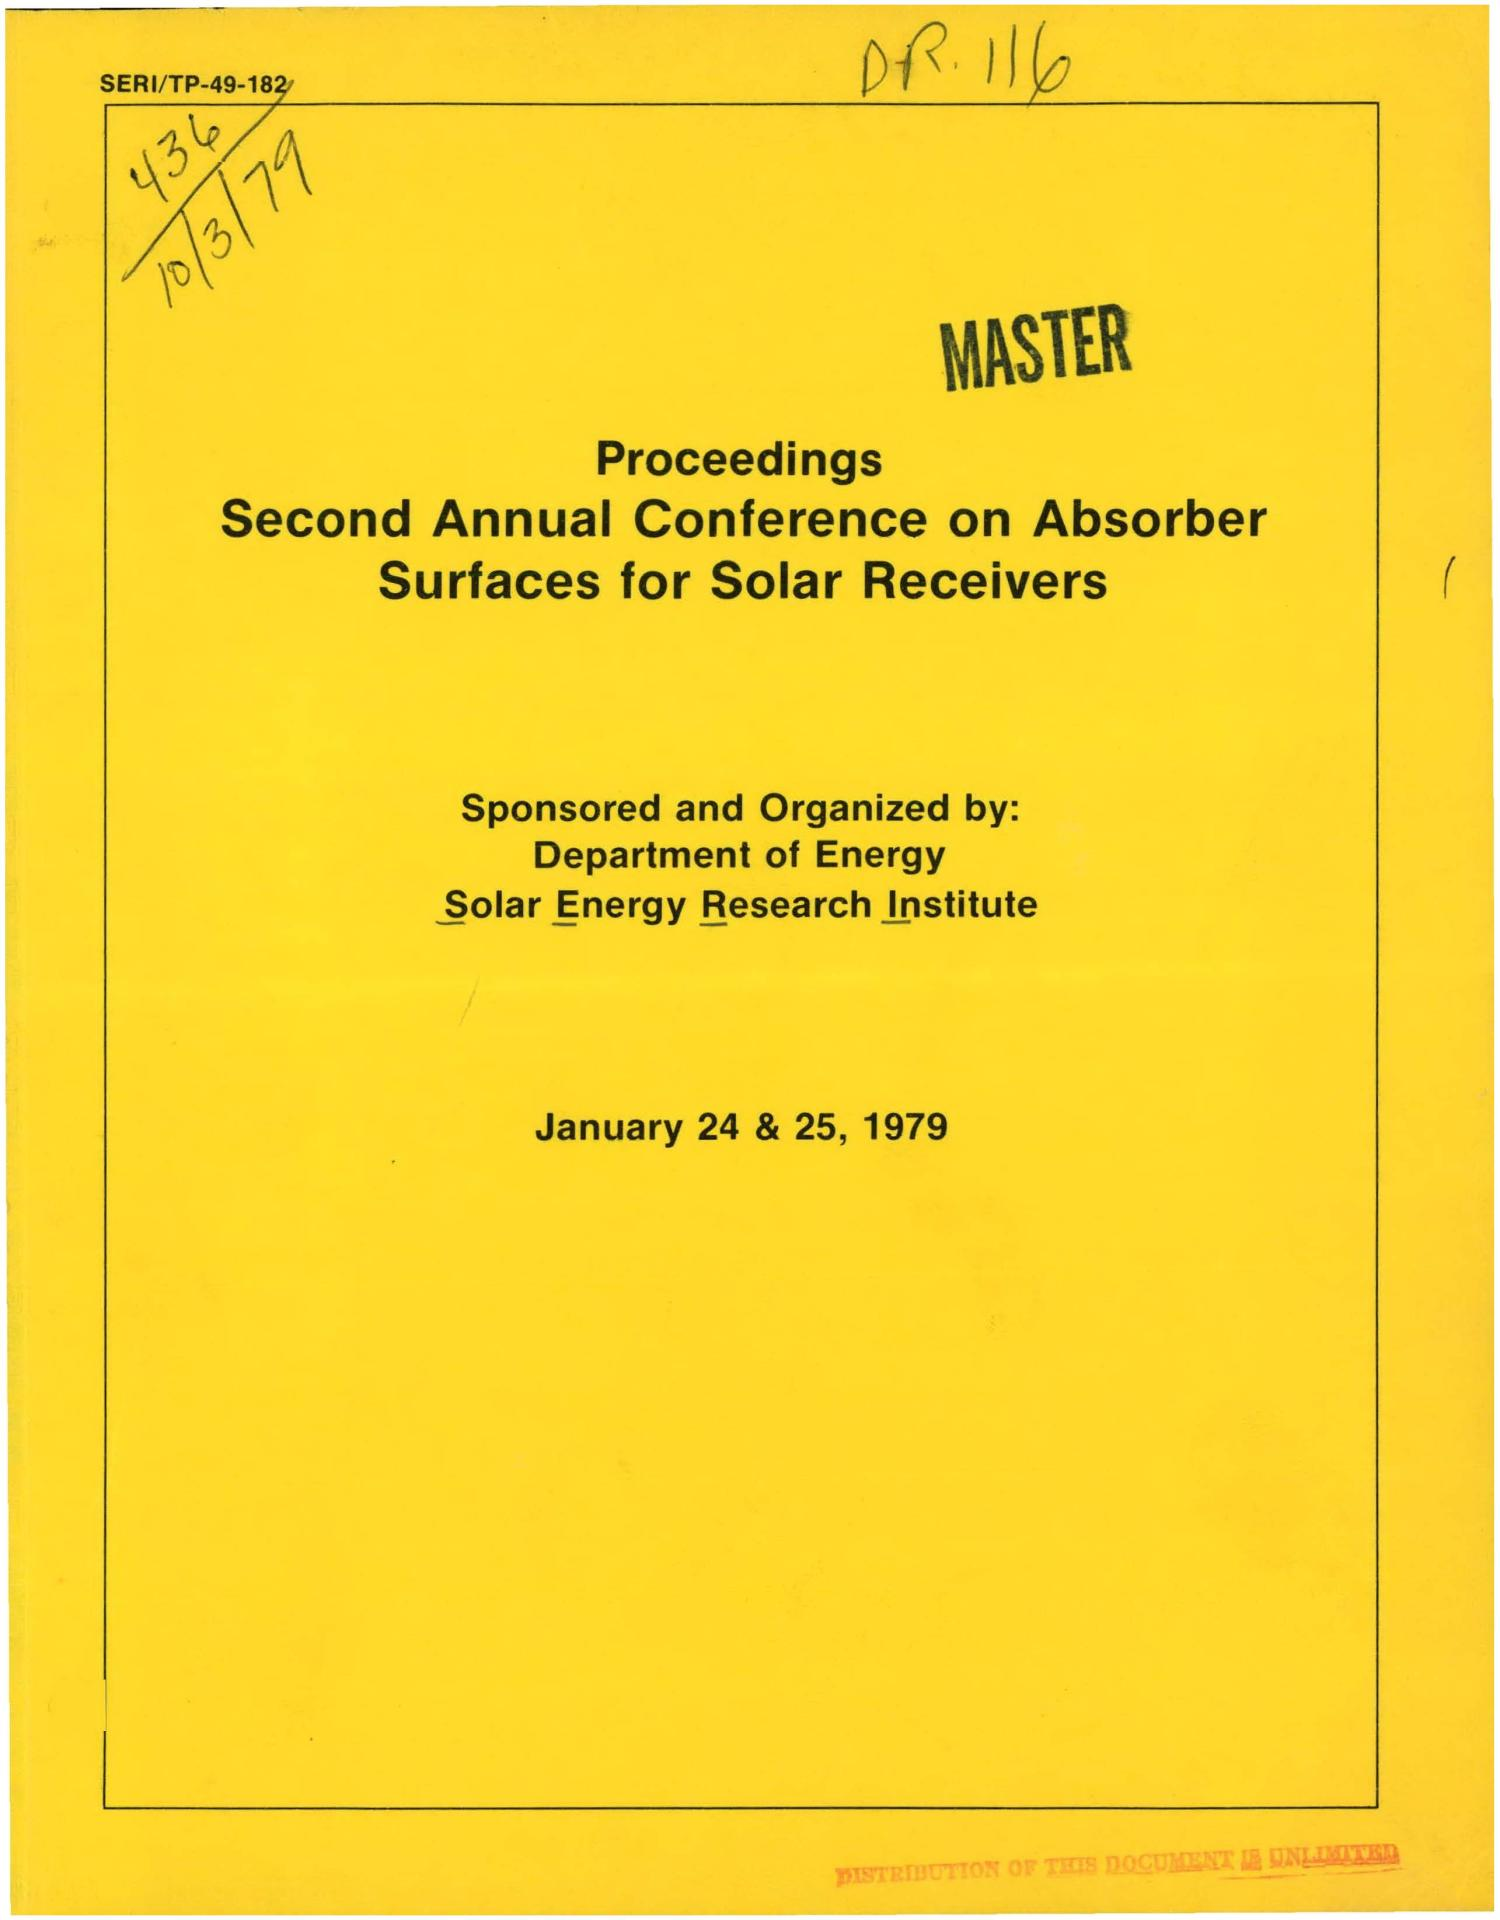 Second annual conference on absorber surfaces for solar receivers                                                                                                      [Sequence #]: 1 of 222